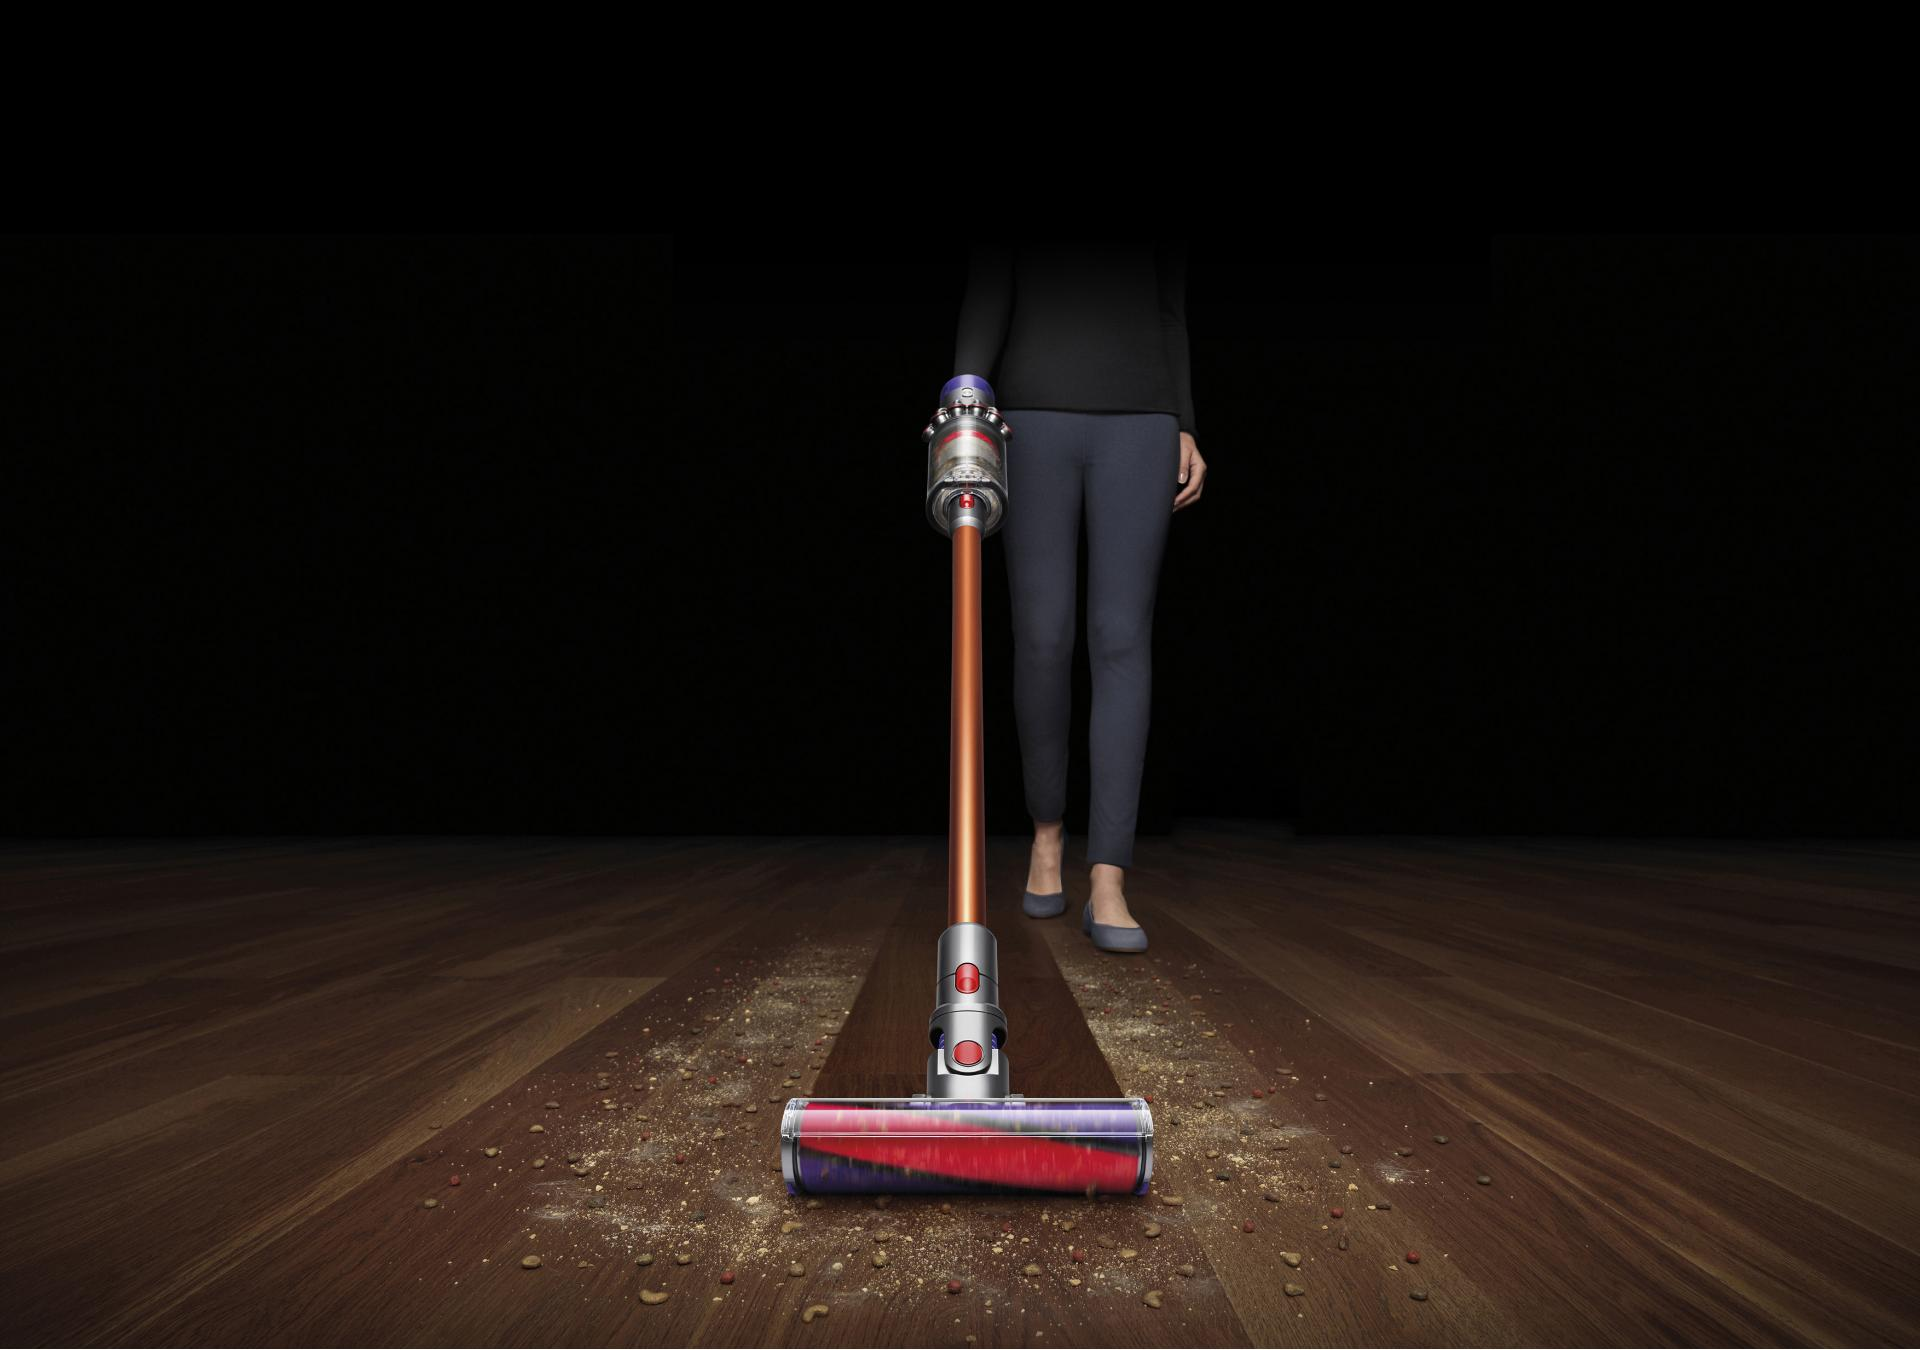 Dyson cord-free vacuums with constant powerful suction and whole- machine filtration capture and seal in allergens and microscopic dust.